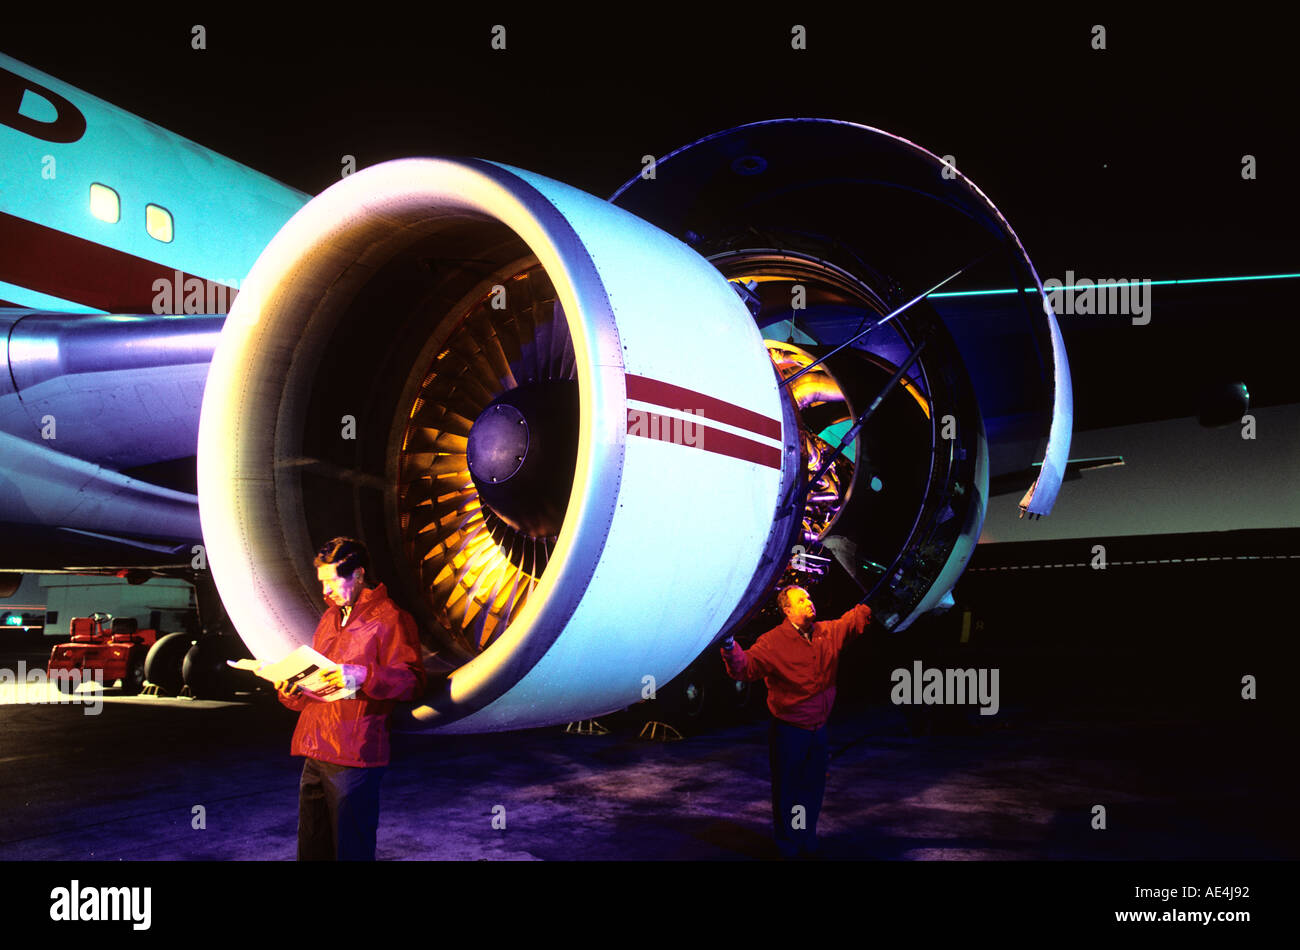 mechanics working on commercial airliner jet engine at night - Stock Image